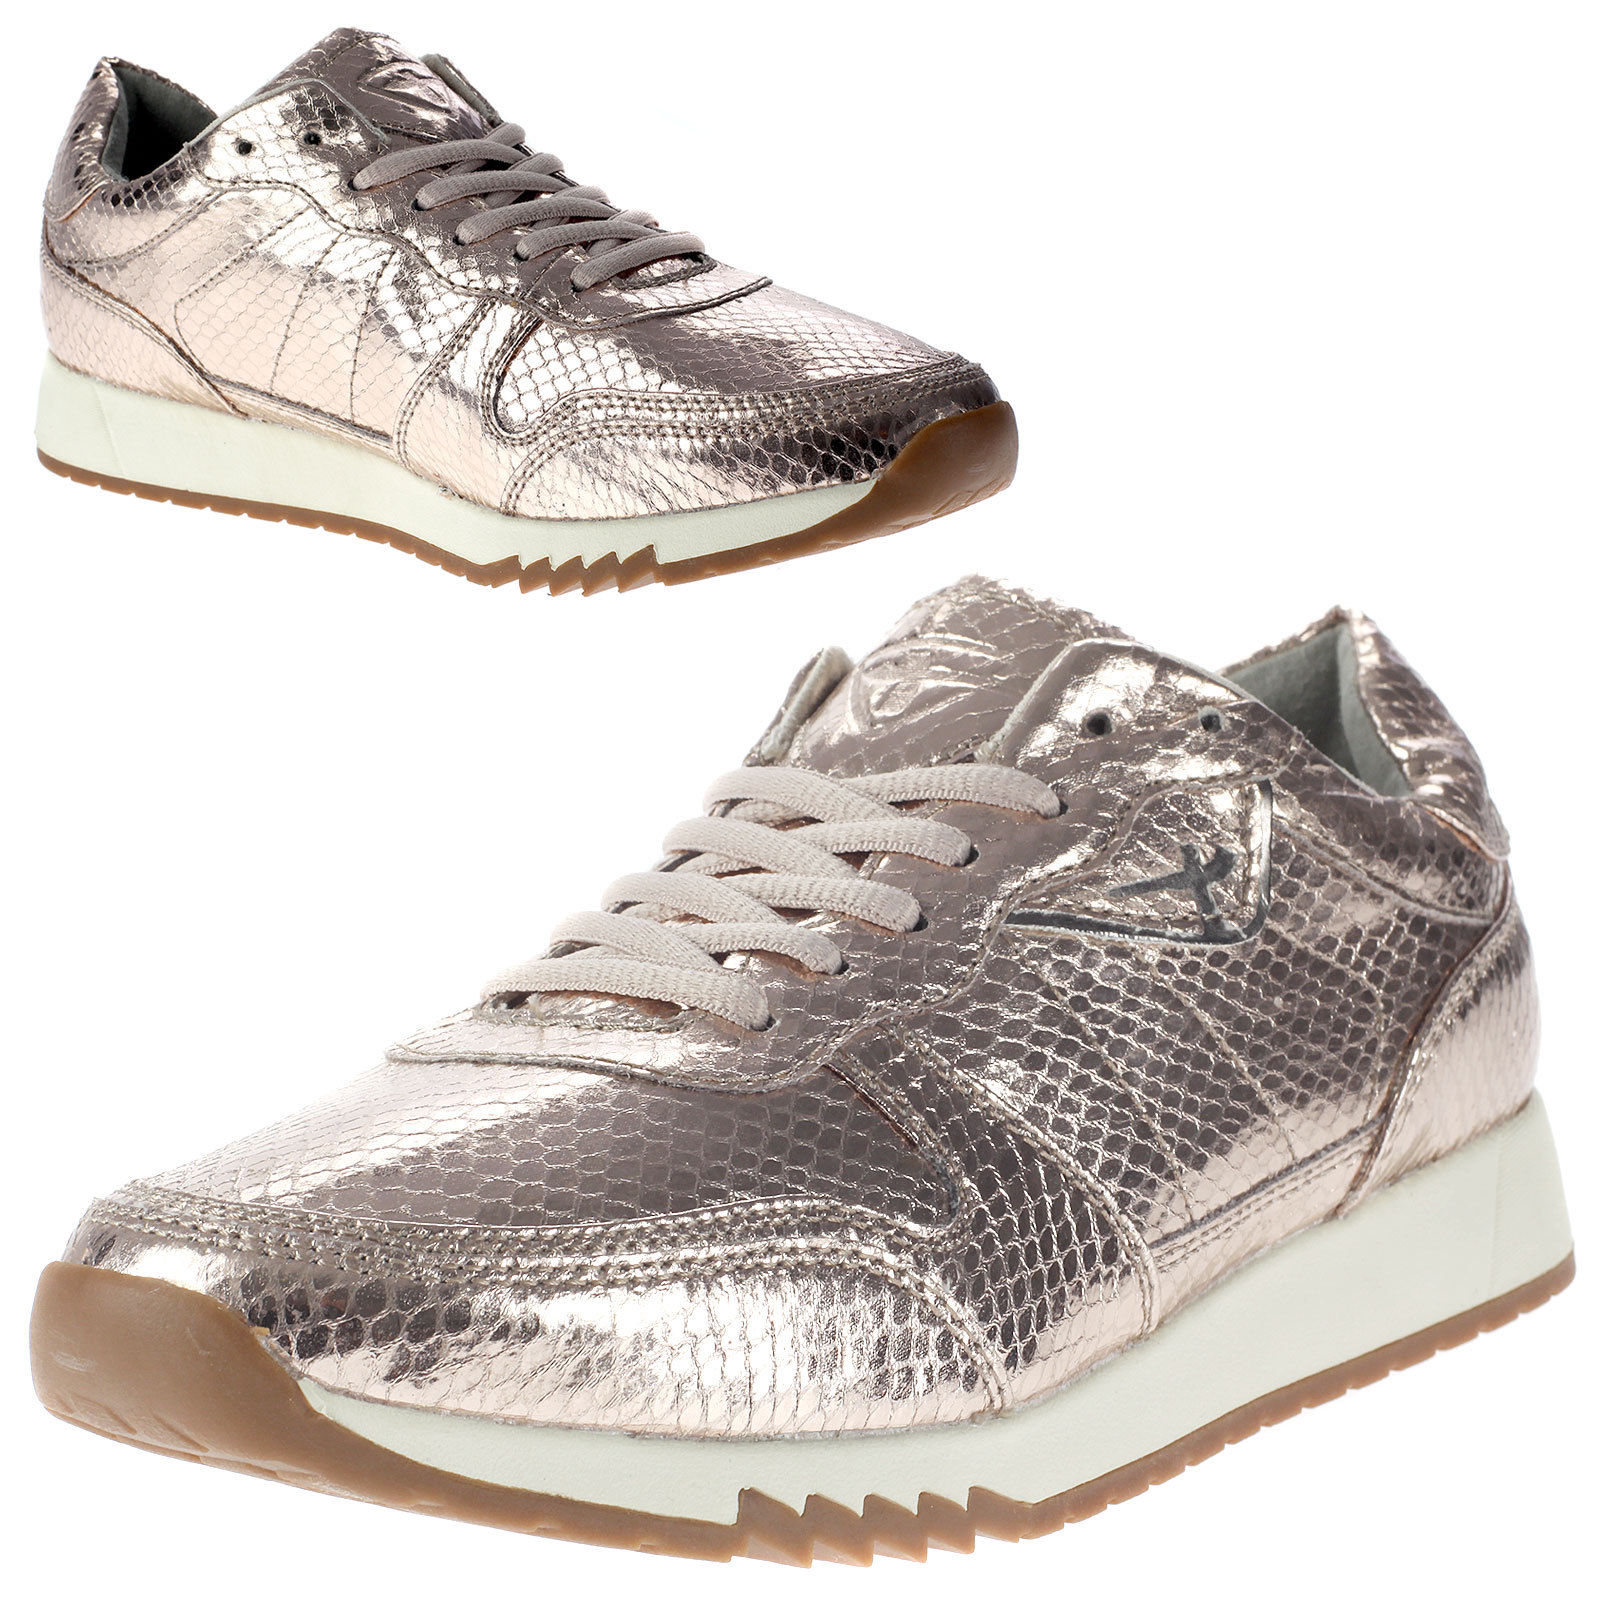 Details about Tamaris Women's Sneakers Reptilmuster Ladies' Shoes Lace up 23604 Gold Rose